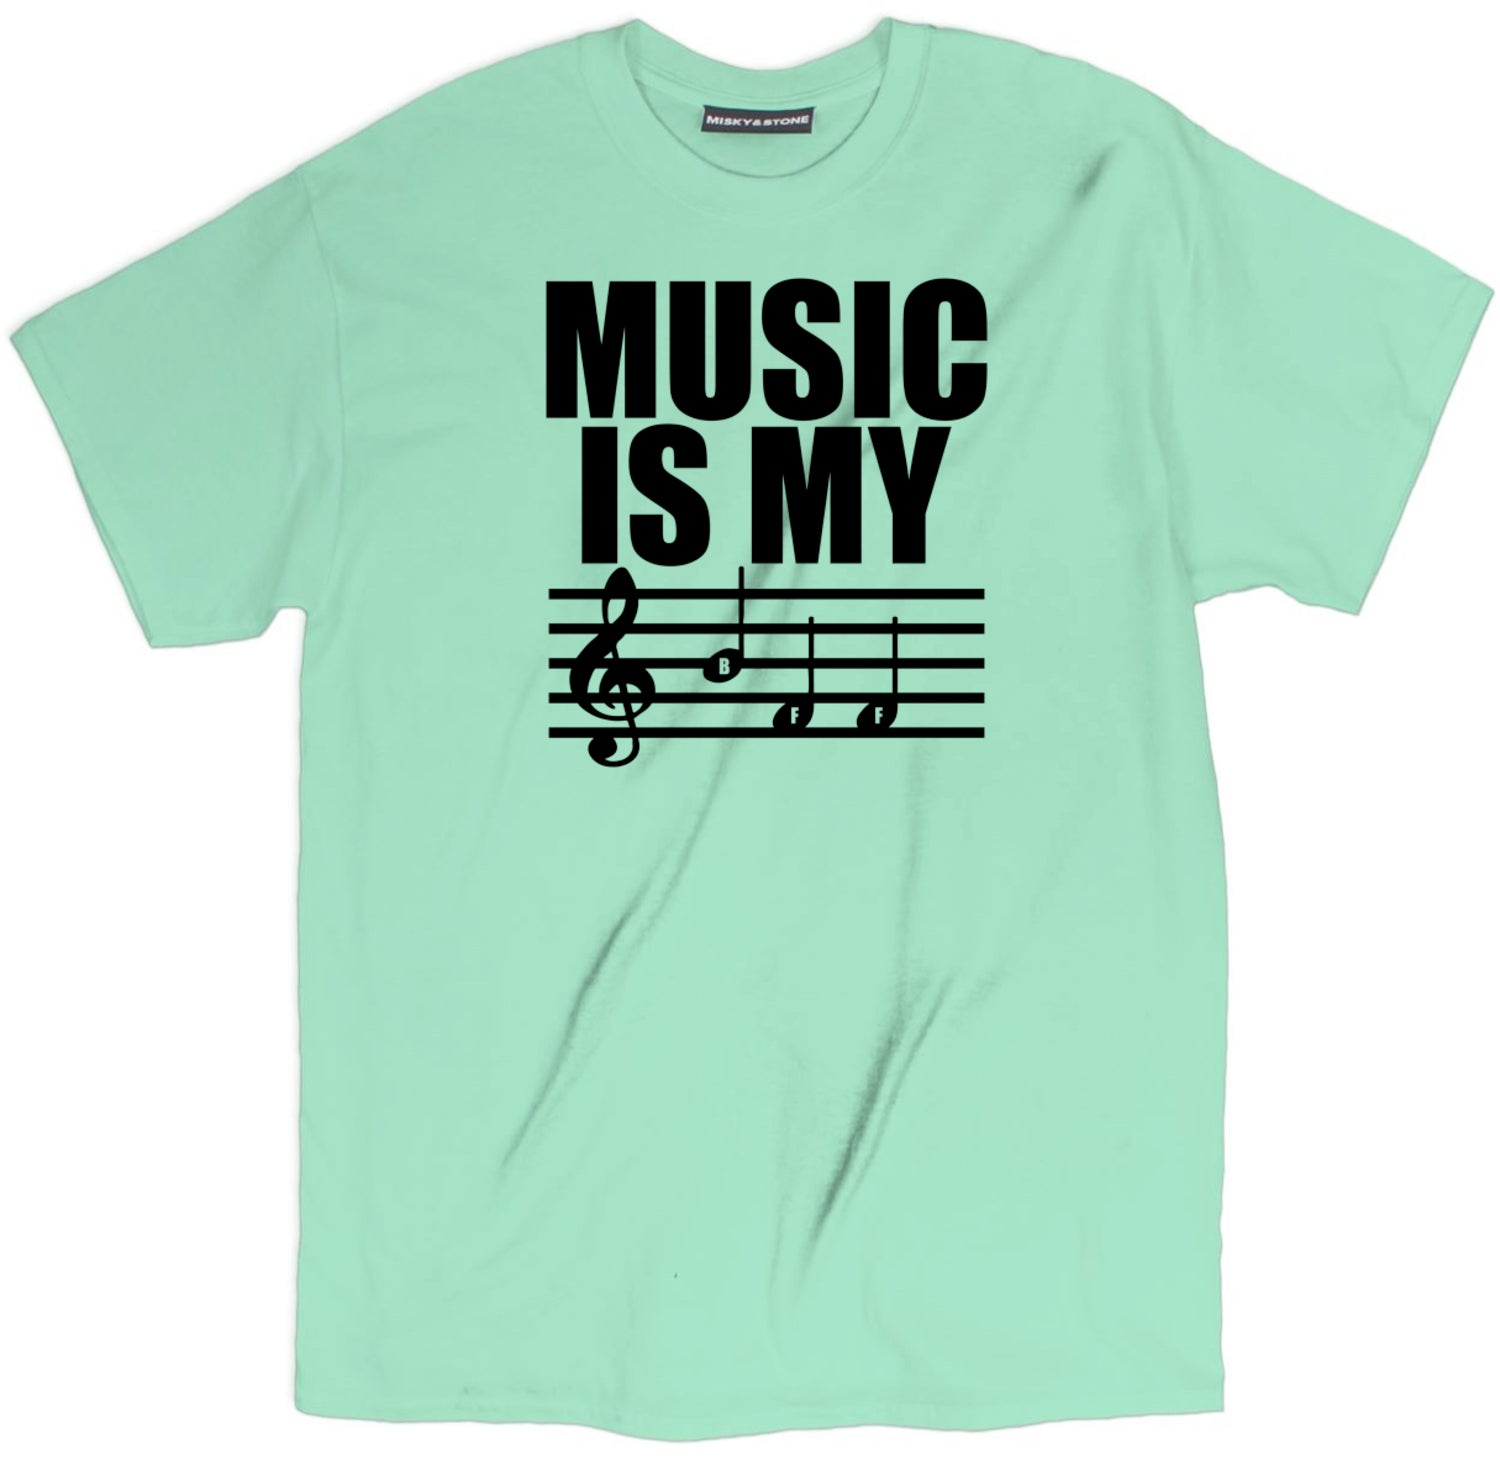 music is my bff t shirt, music quote t shirts, music pun t shirt, music pun t shirts,